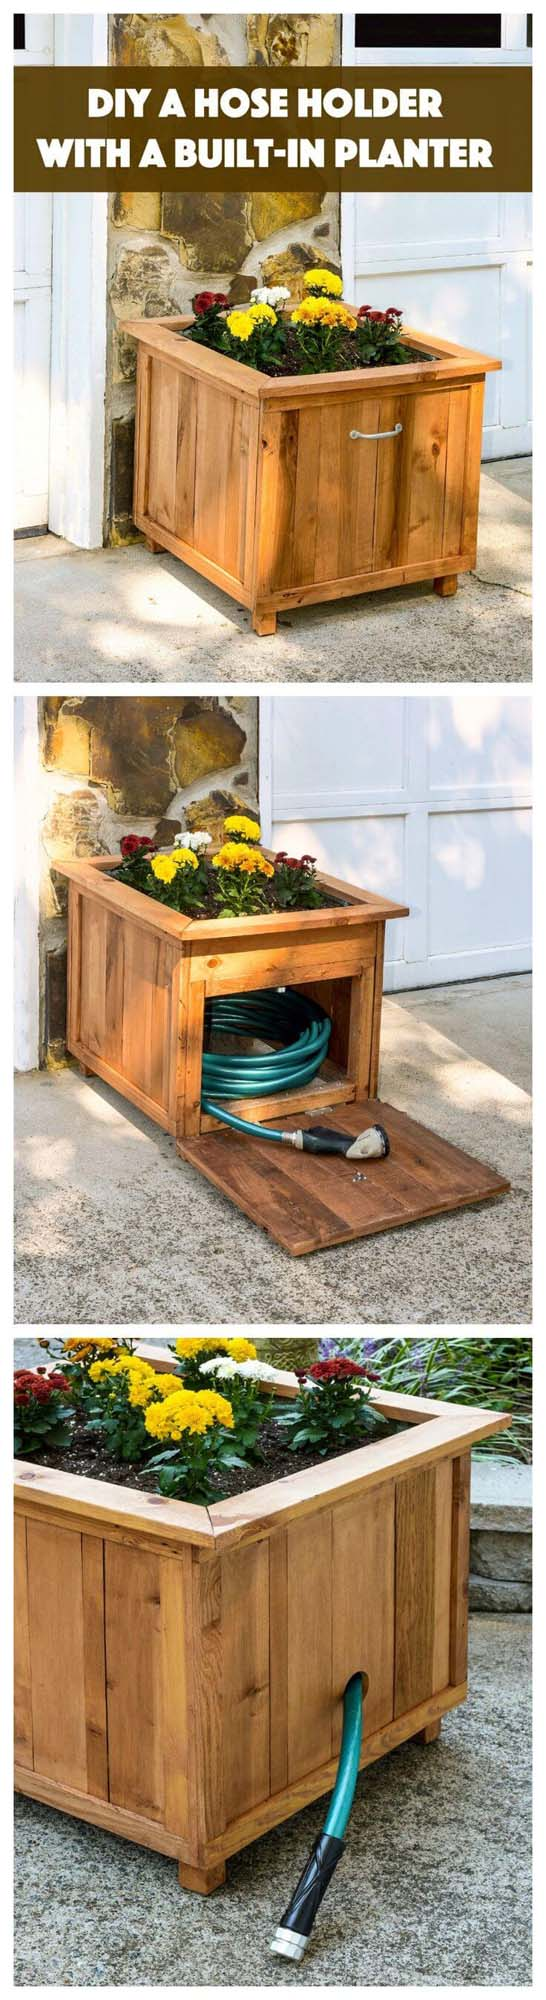 Gardener's Helper Planter Box & Hose Holder #diy #project #backyard #garden #decorhomeideas